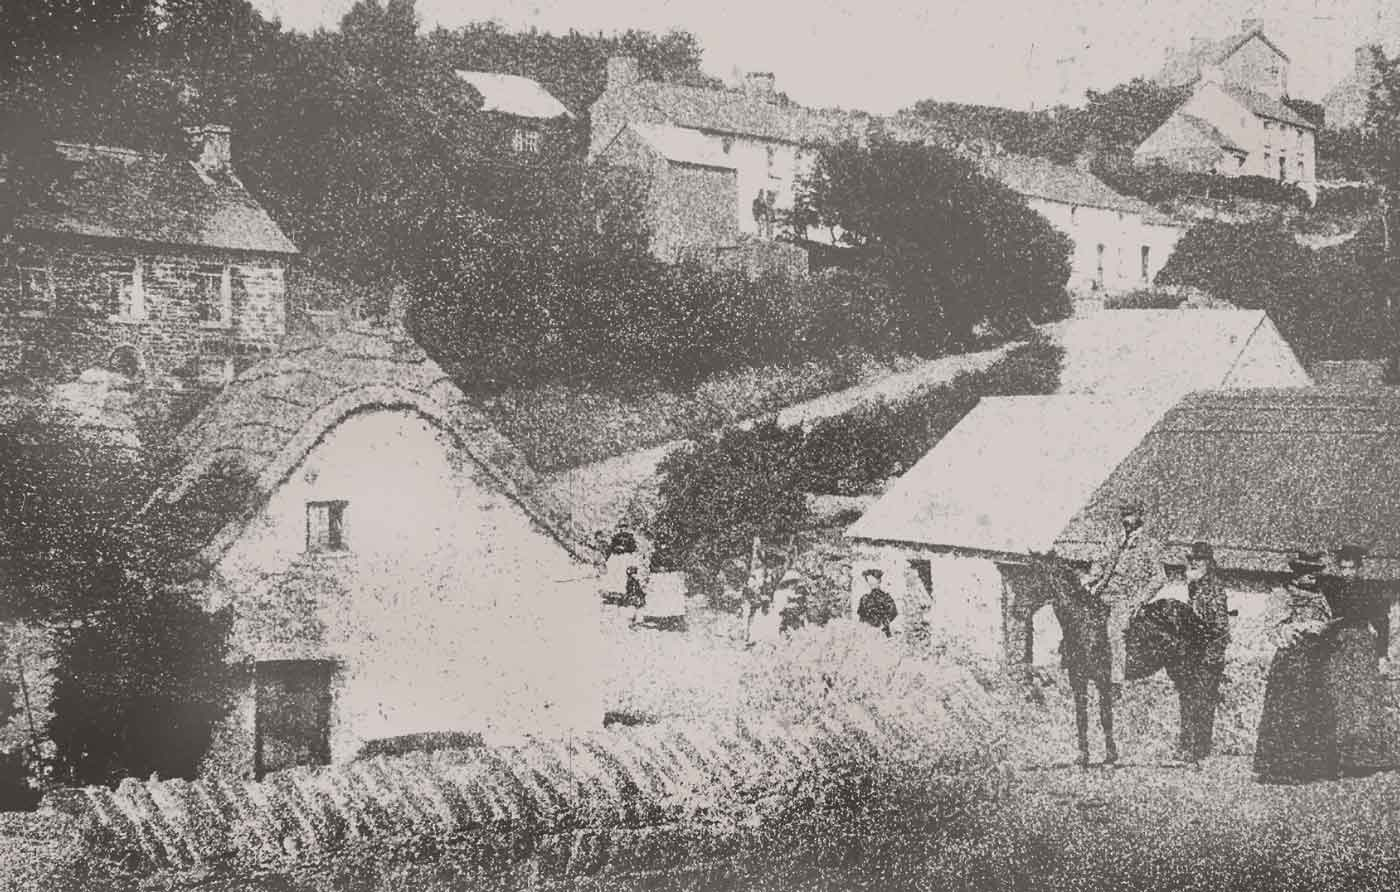 The village in 1901. Glan yr Afon is on the left